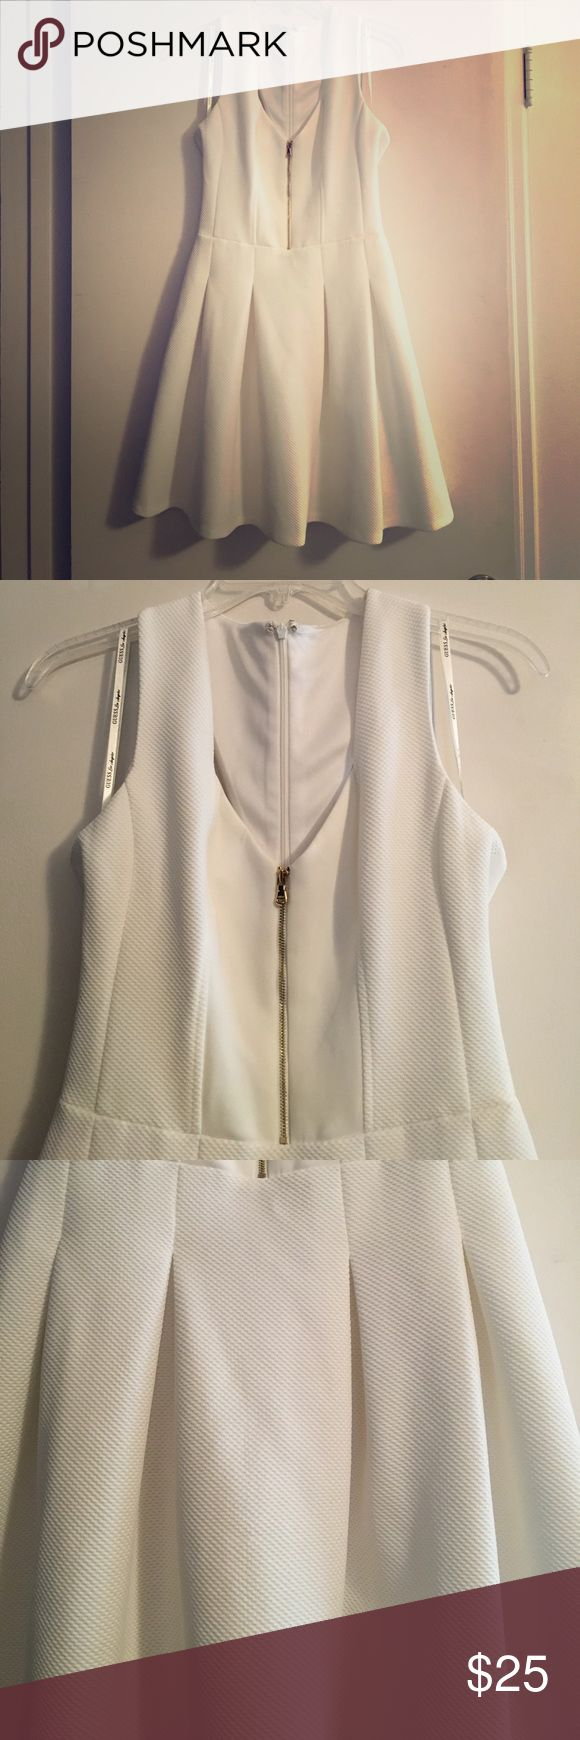 Guess White Fit n Flare Dress Guess white fit n flare dress with gold zipper. Beautiful fabric detail with interesting strap detail in the back. Gold zipper is decorative but functional. Has hidden zipper in the back. 100% lined. Can be worn with a bra (dress straps cover bra straps). Excellent condition. Beautiful white. Never worn Guess Dresses